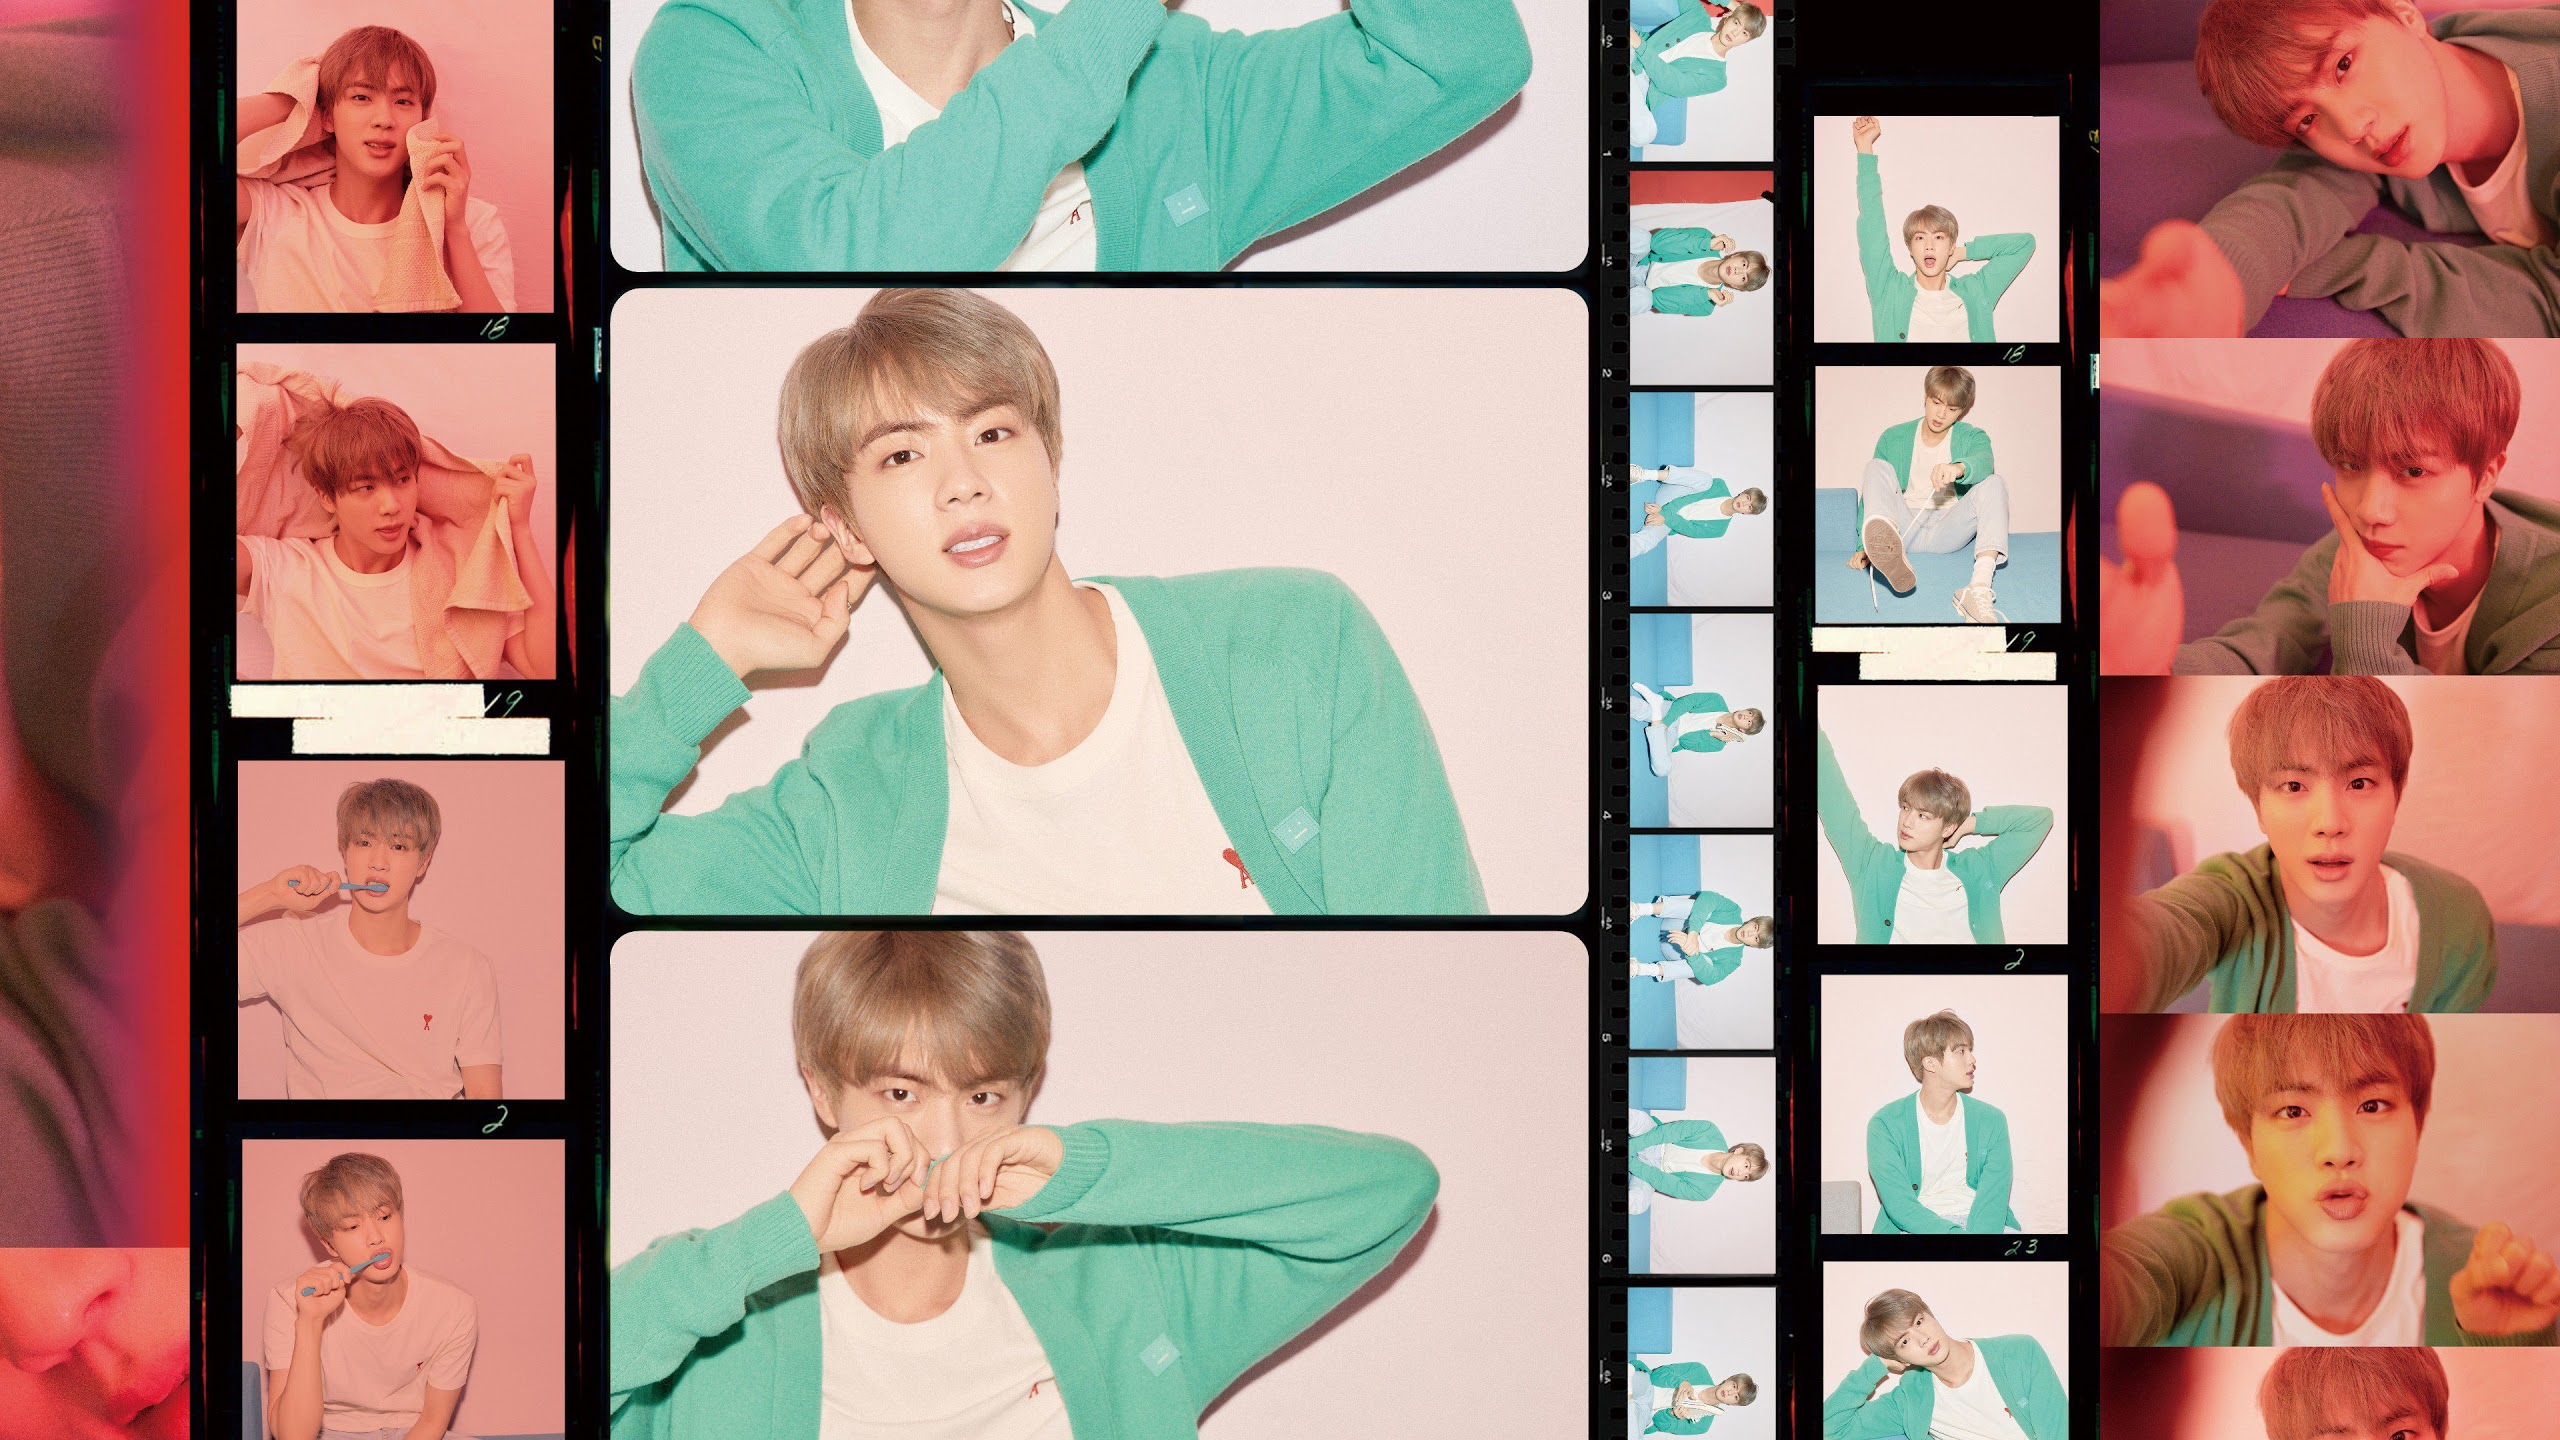 bts wallpaper hd,face,collage,facial expression,head,skin